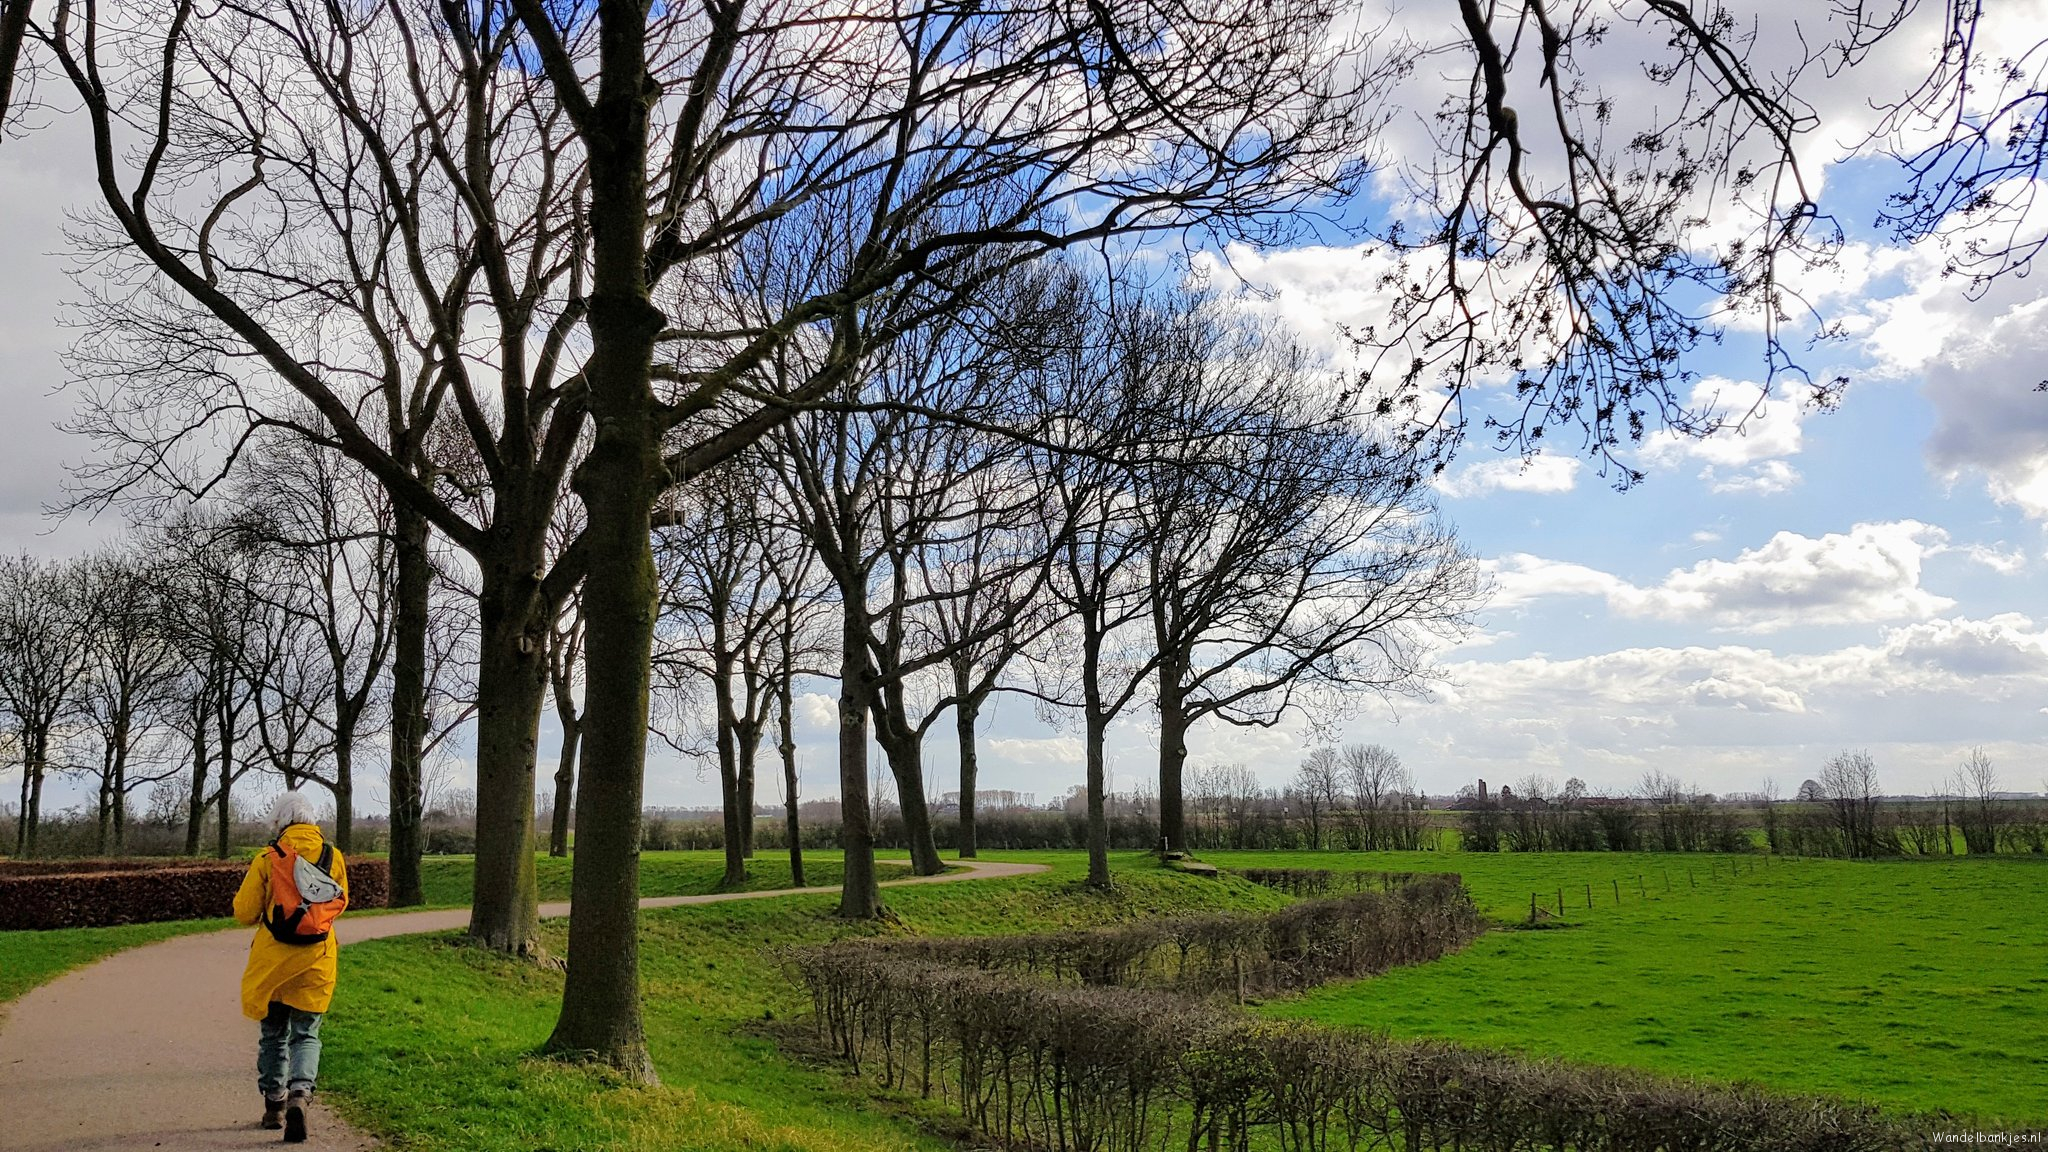 rt-wolfswandelplan-kasteel-doorwerth-wandelbanks-https-t-co-3raumk3mjr